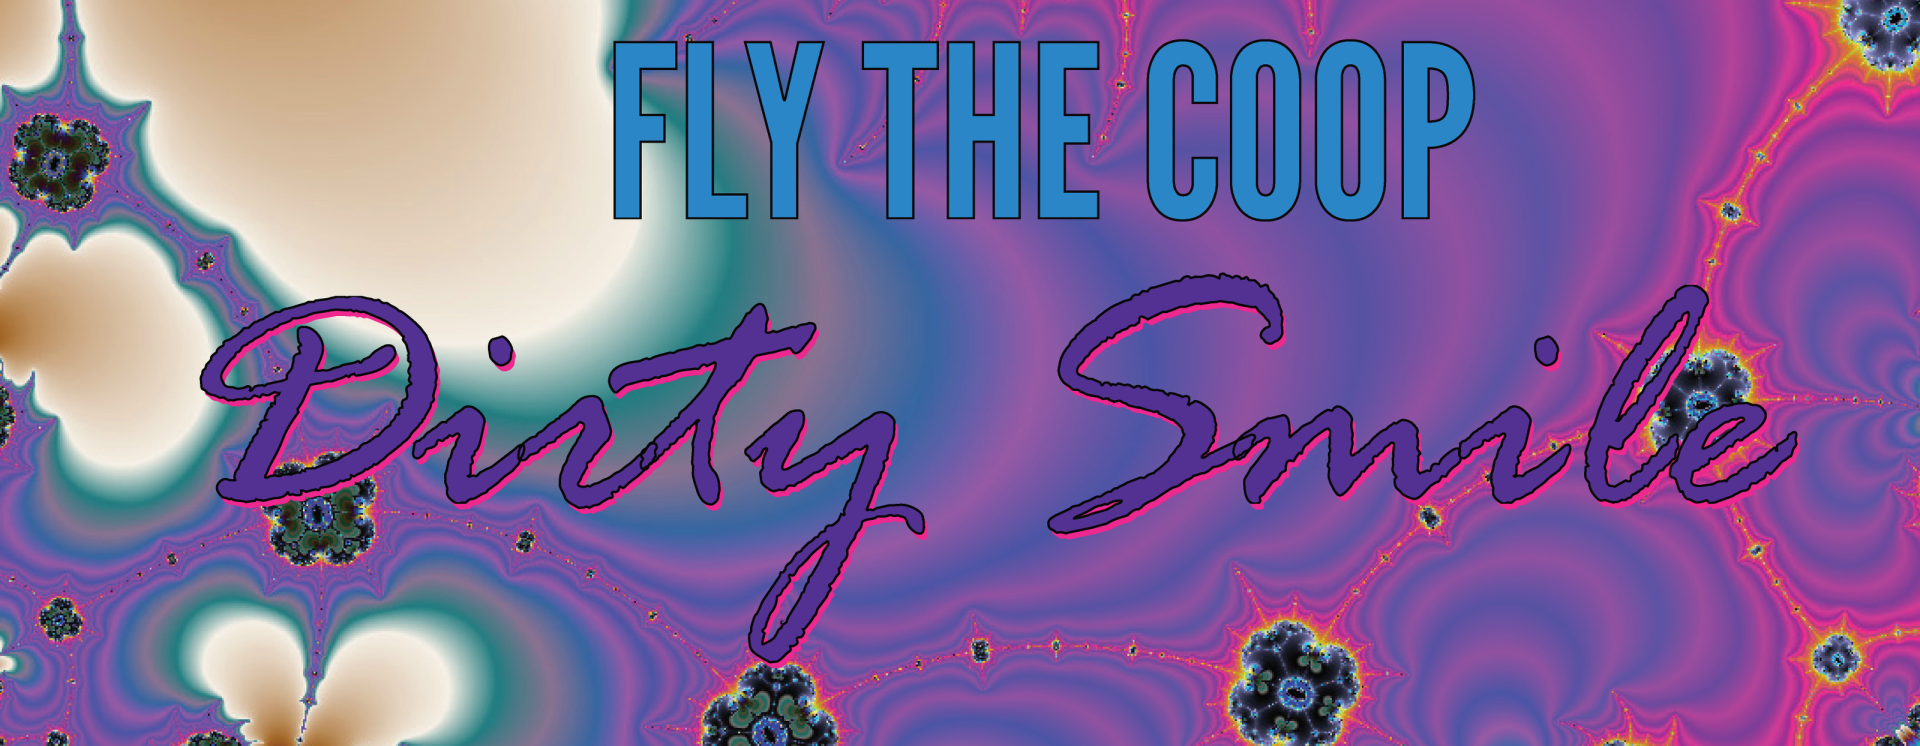 1438876141 fly the coop cover number 3 01 copy